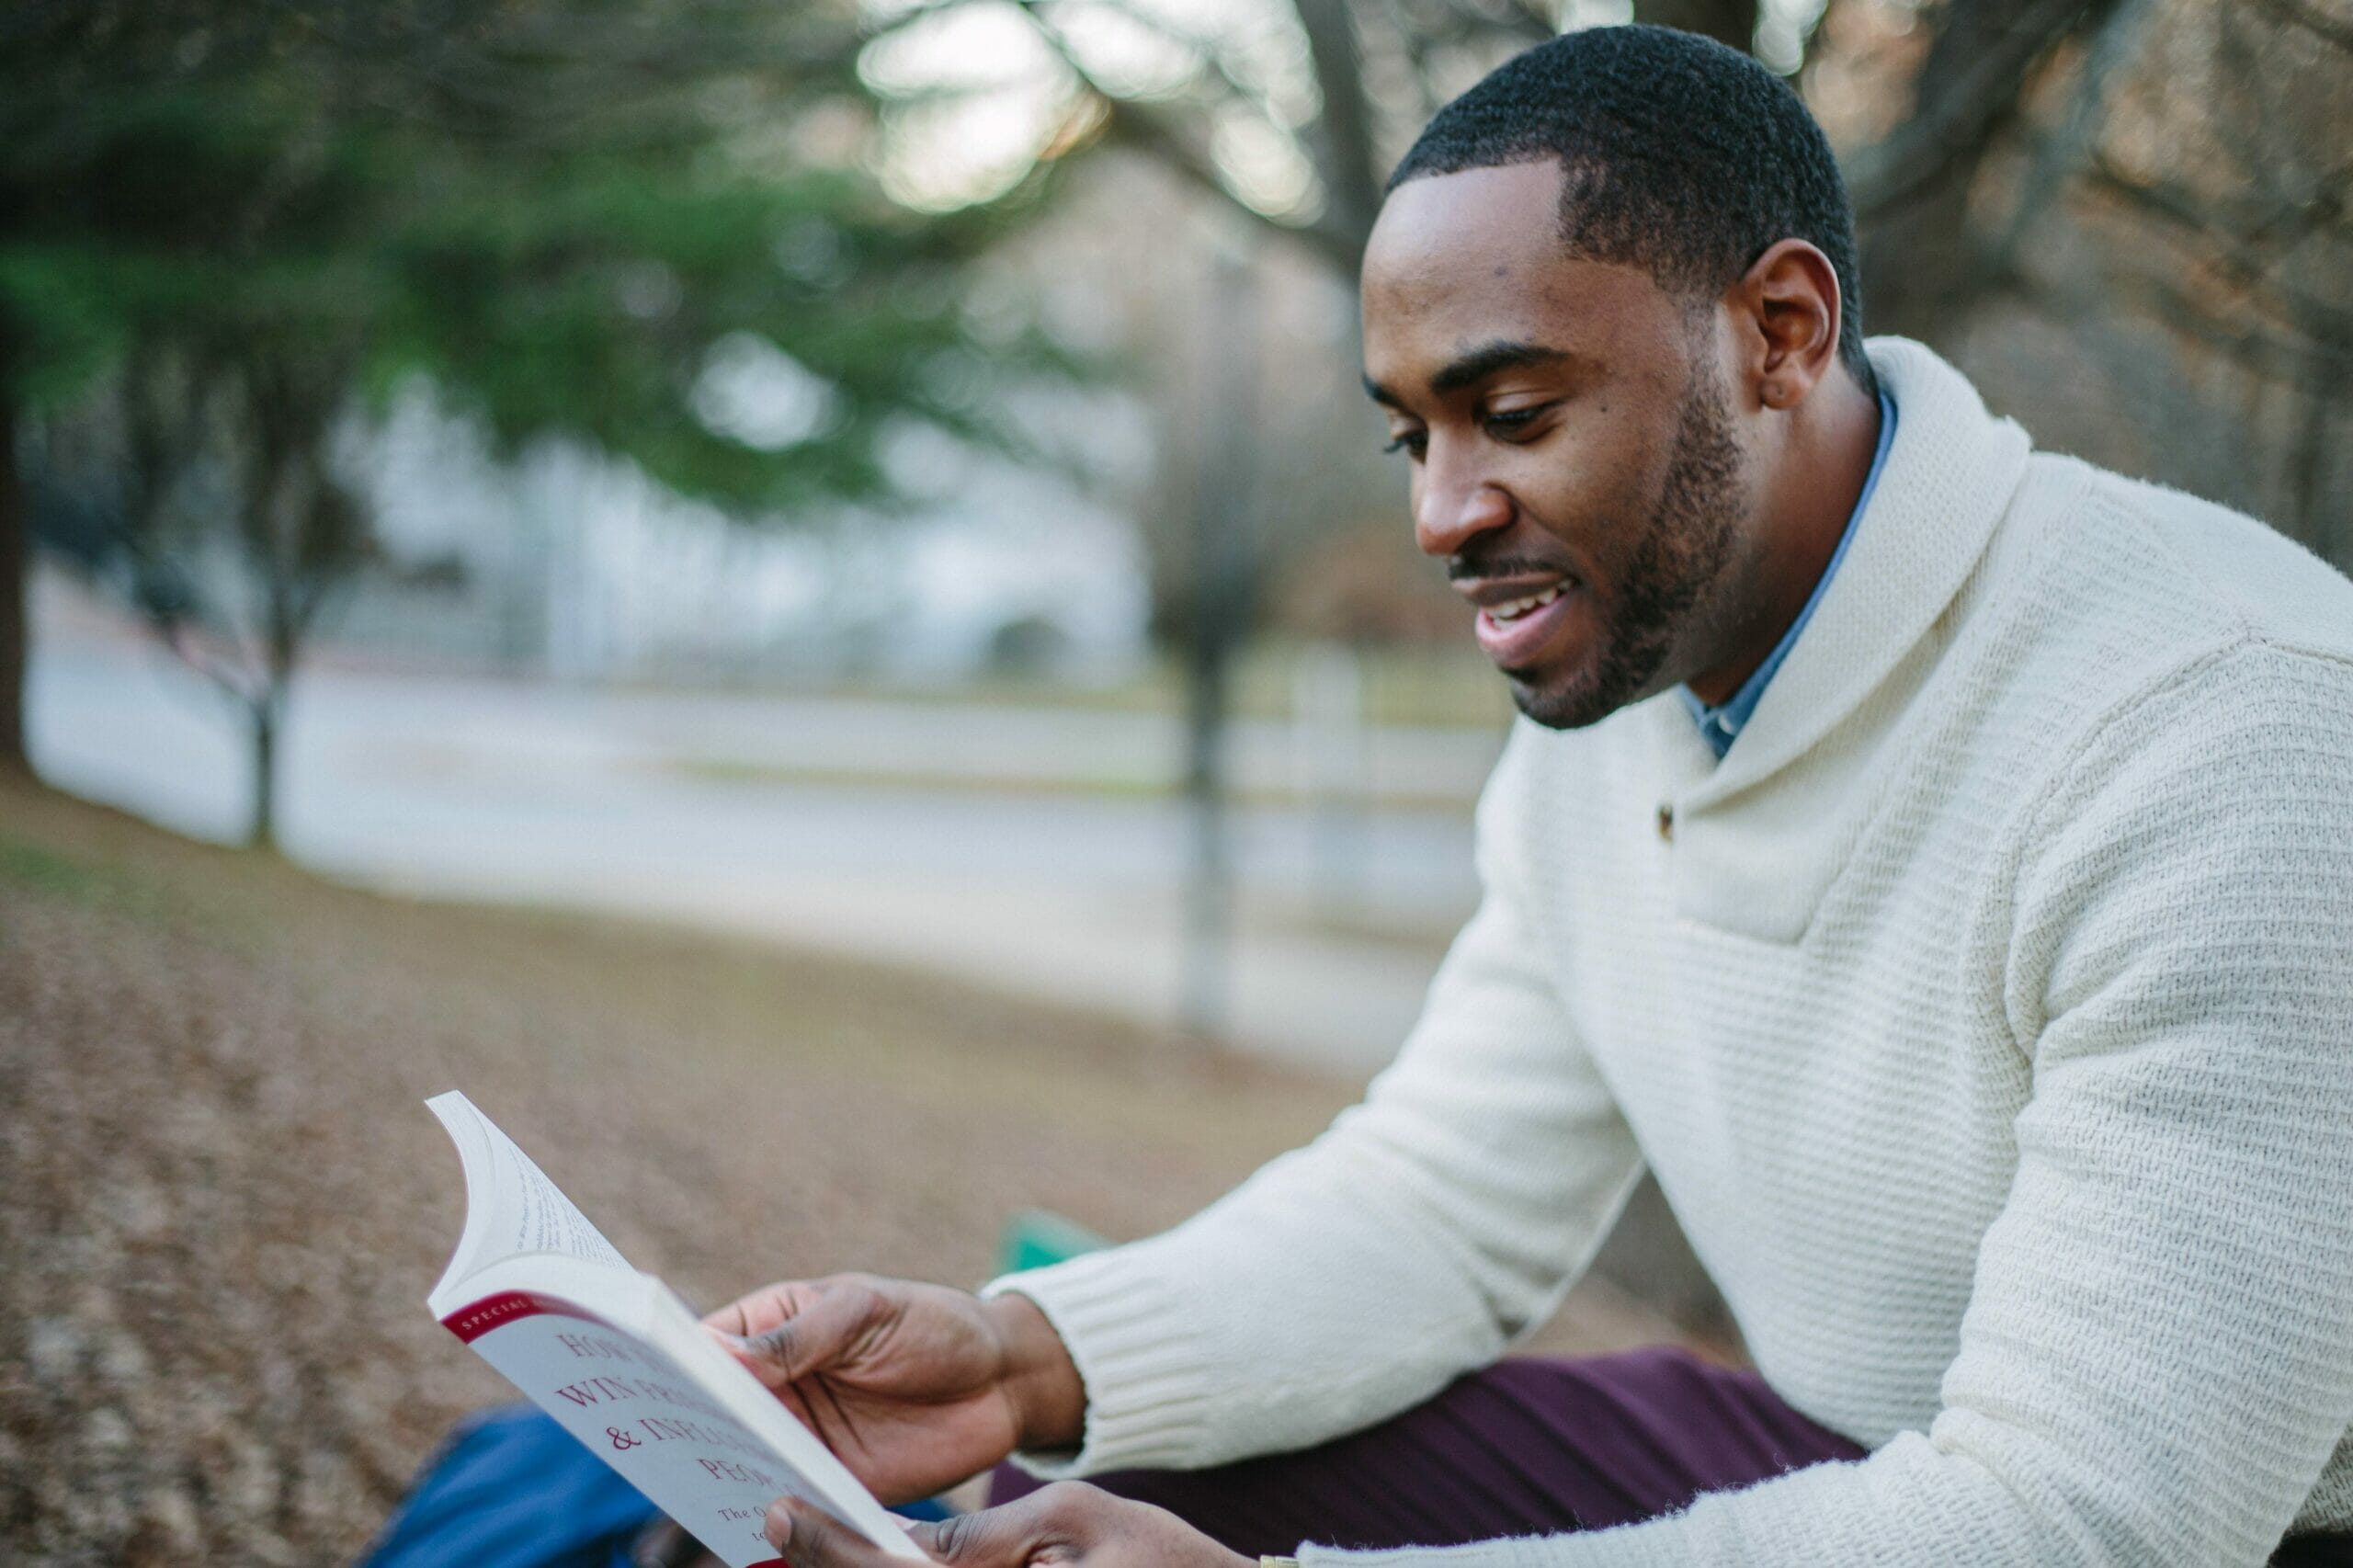 Man sitting on bench and reading a book.